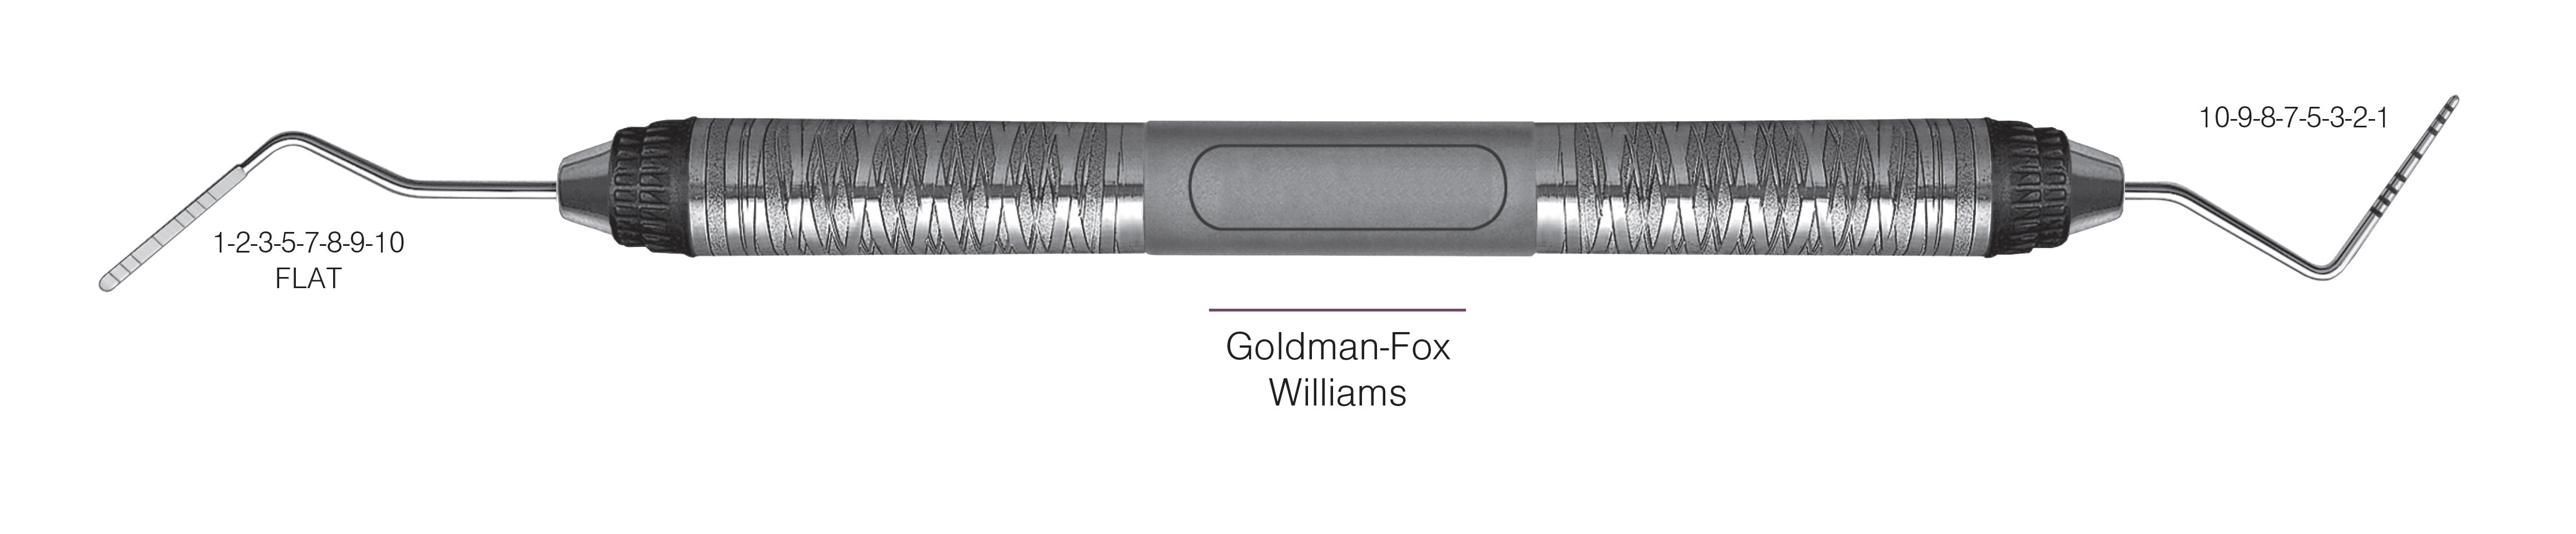 HF-PGF-W6-7, PROBES DOUBLE-ENDED Goldman-Fox/Williams, Black markings, 1-2-3-5-7-8-9-10 mm FLAT & 10-9-8-7-5-3-2-1 mm, Handle Satin Steel Colours, Aluminum Titanium Nitride (AlTiN) Coating, Double Ended